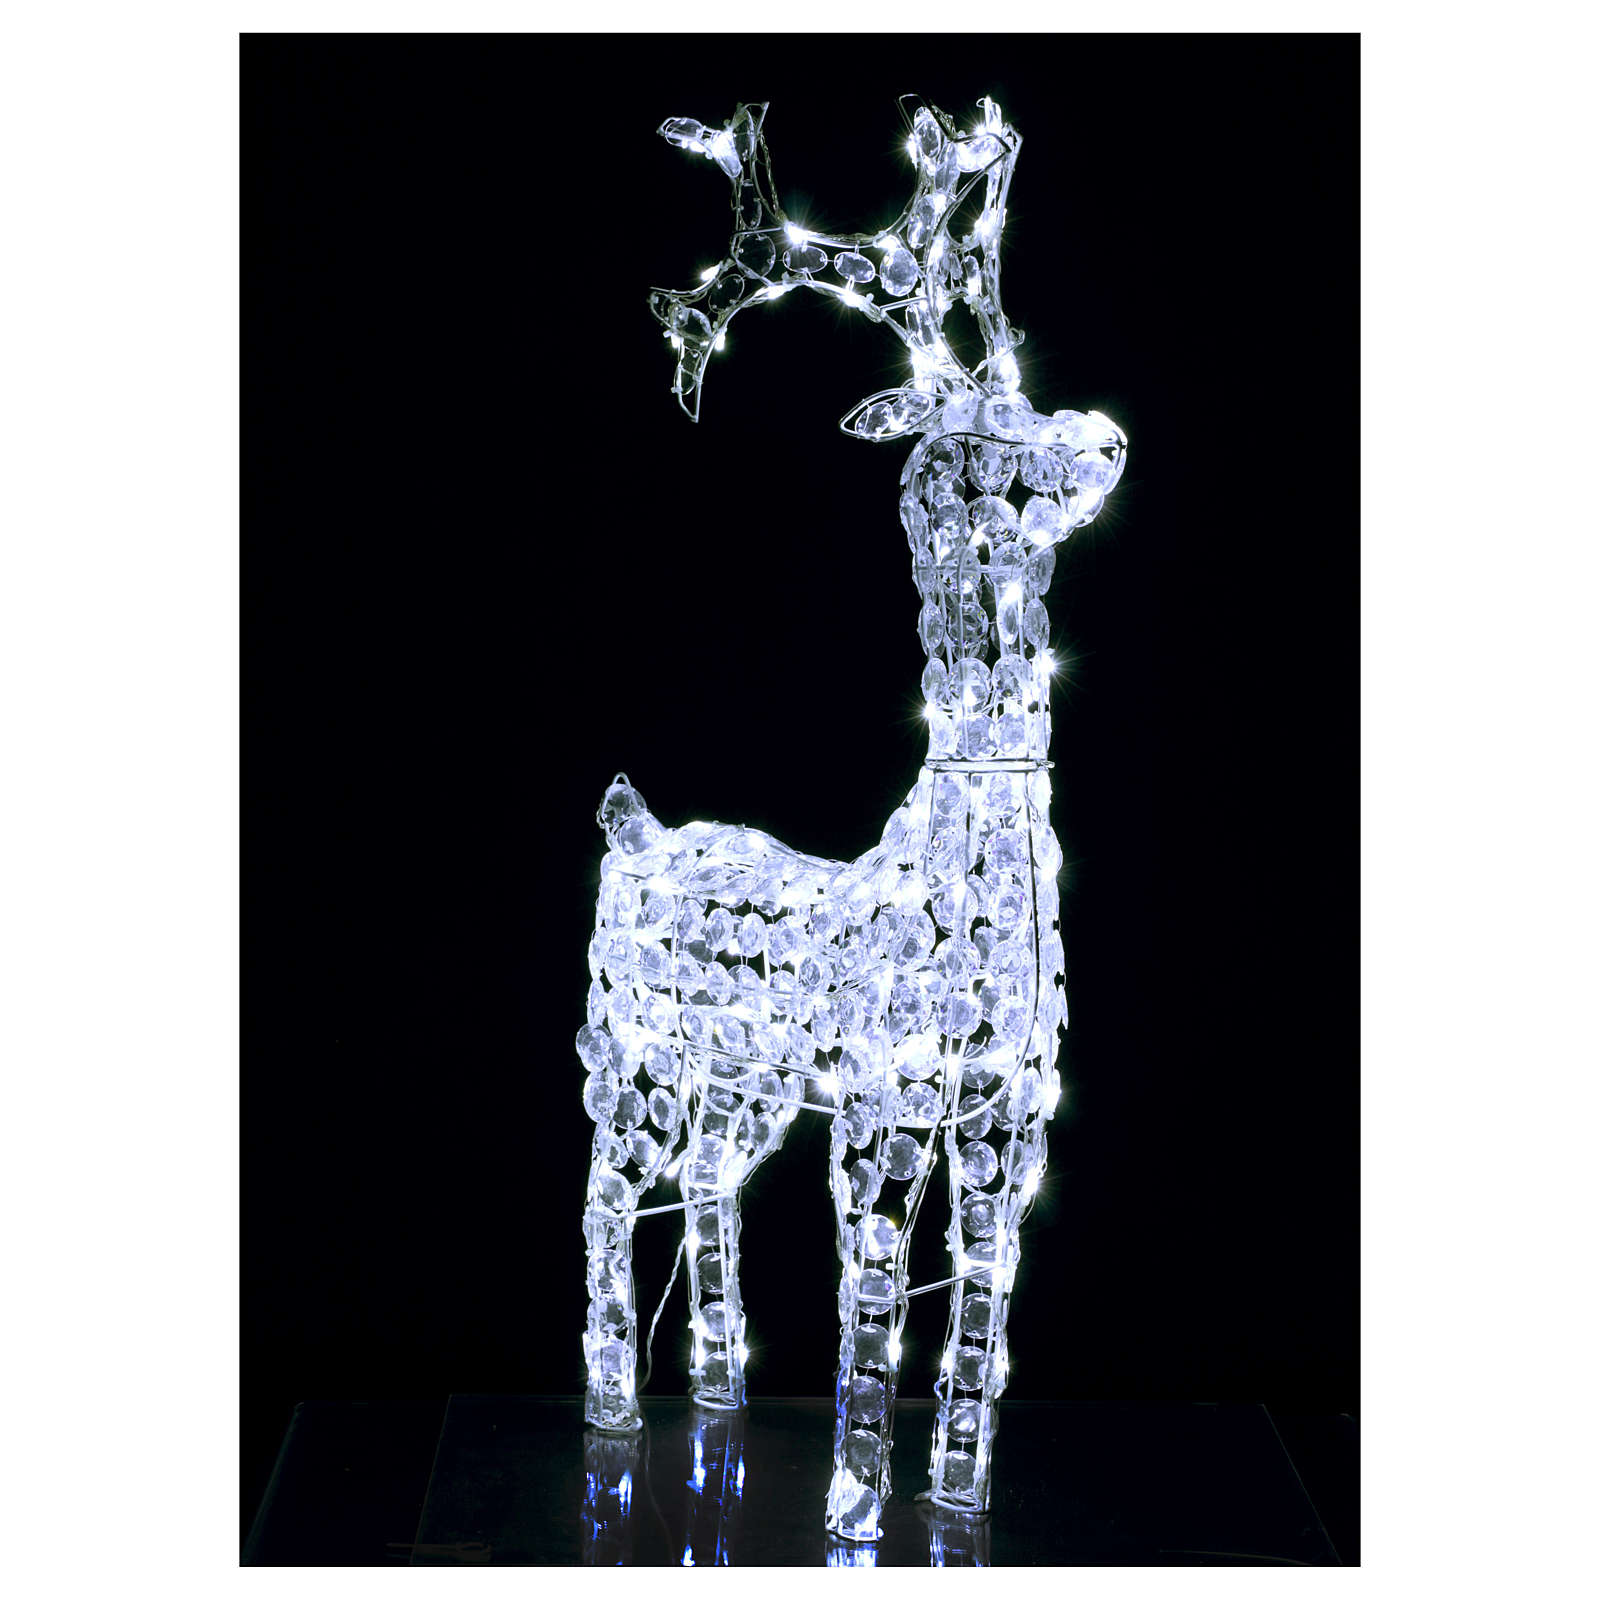 Diamond reindeer 150 leds cold white for external and internal use 3